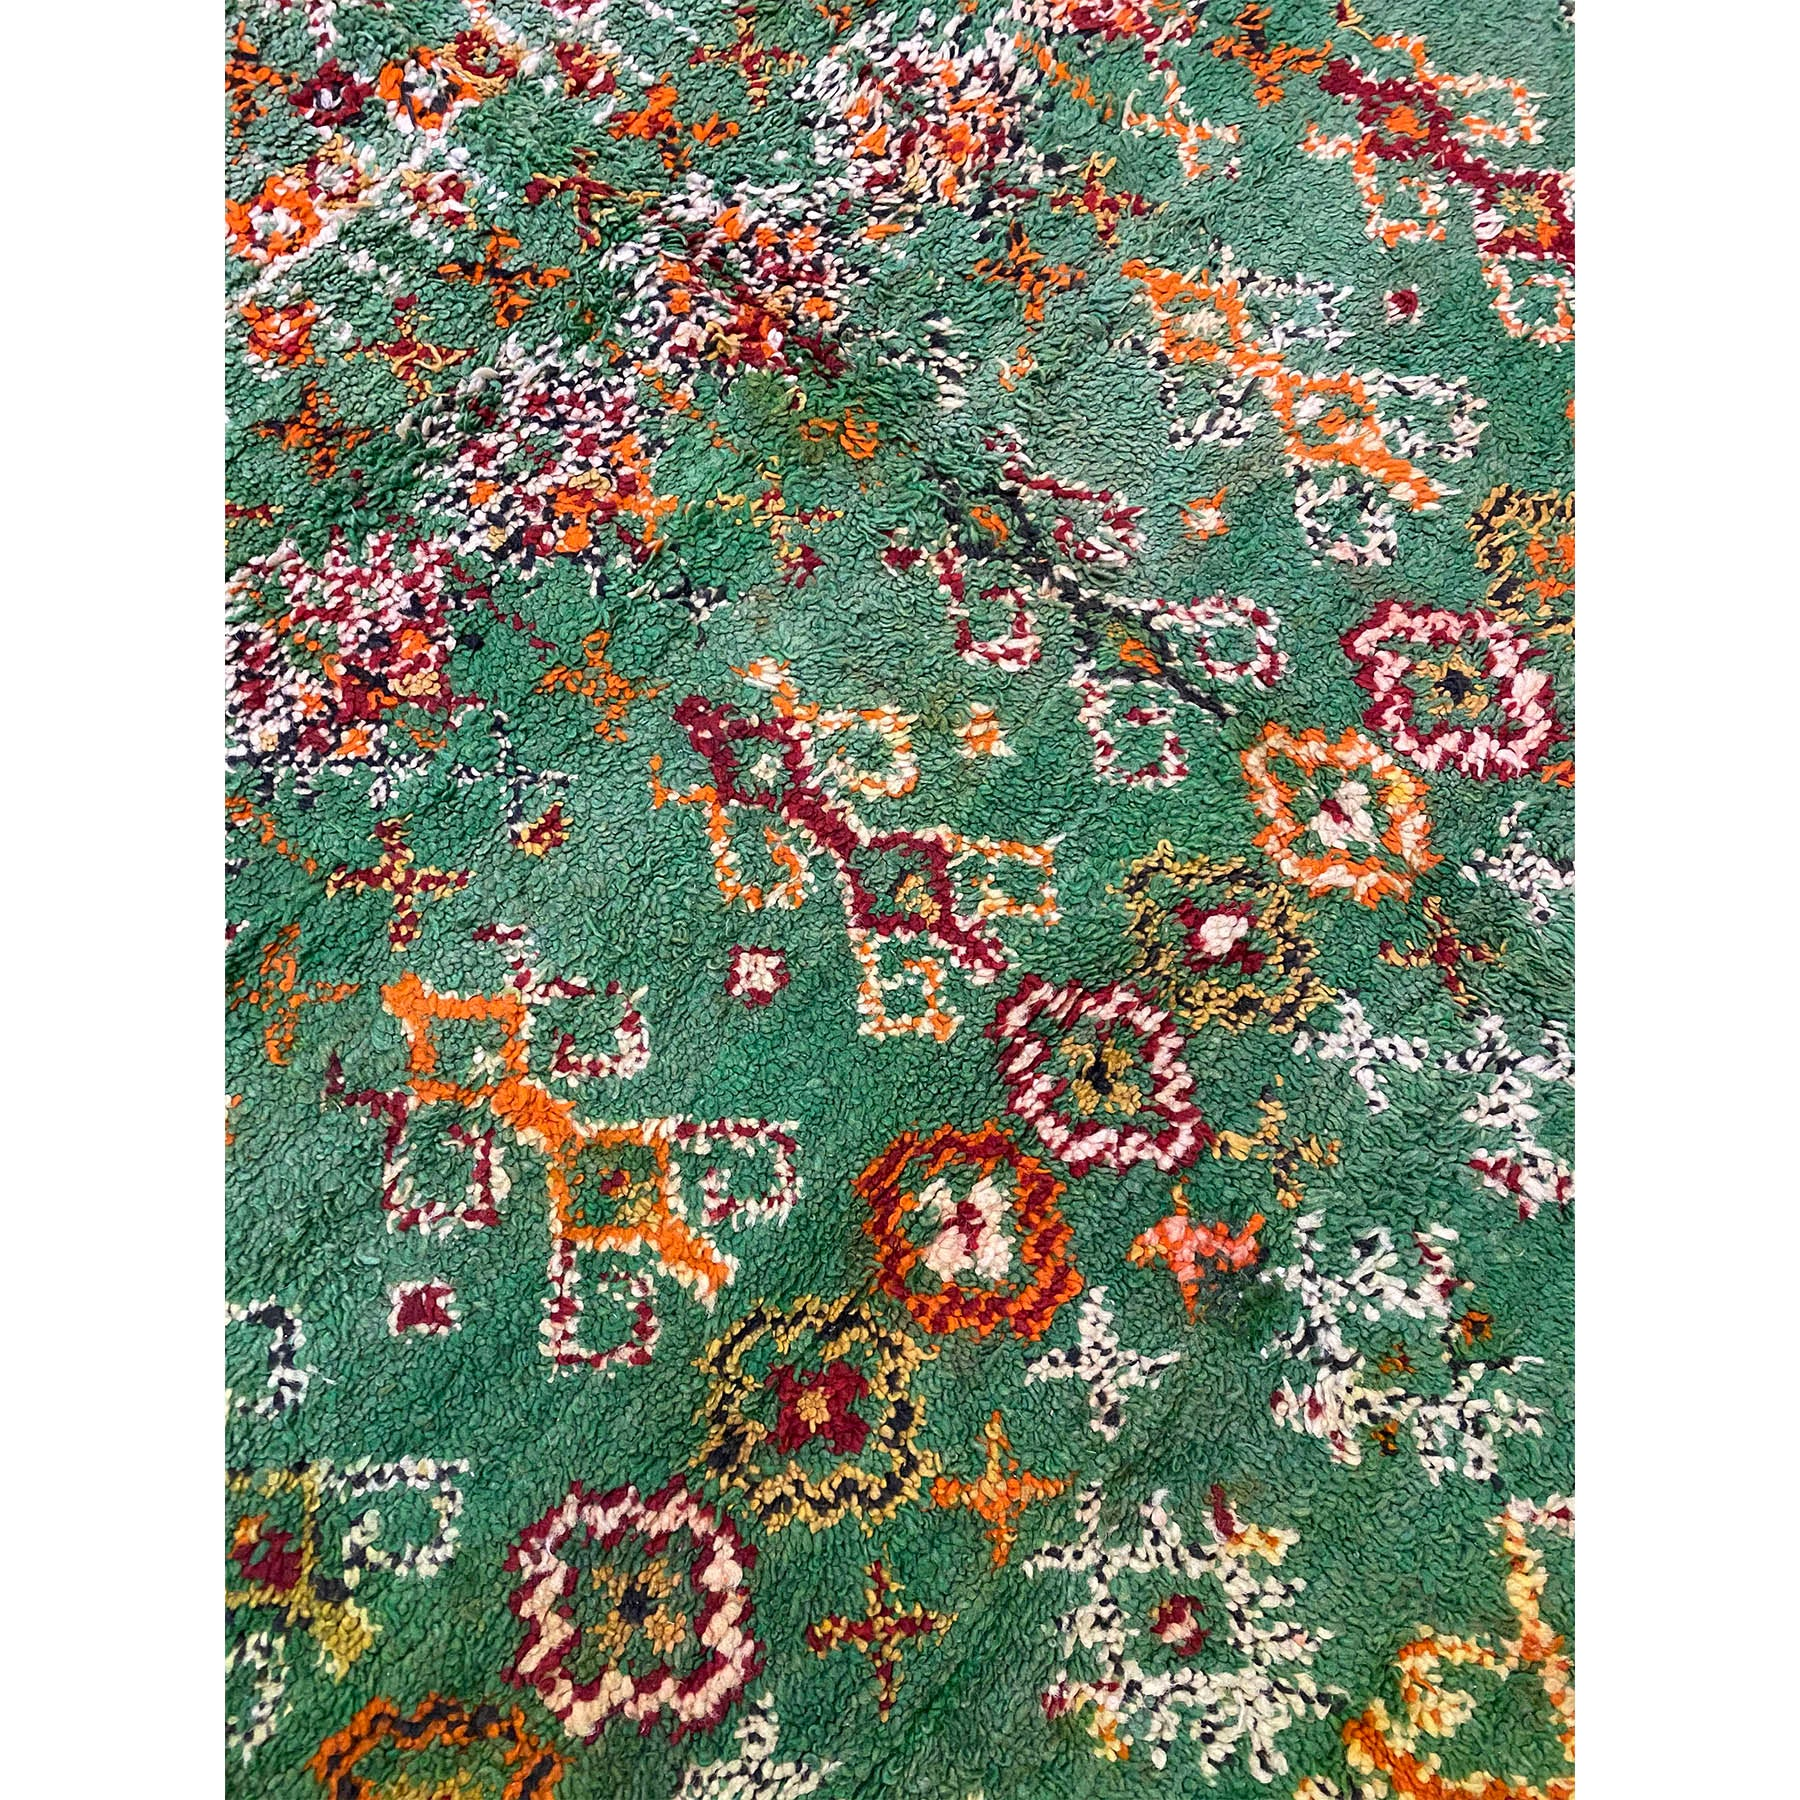 Green Beni Mguild medium sized Moroccan rug with red and orange details - Kantara | Moroccan Rugs